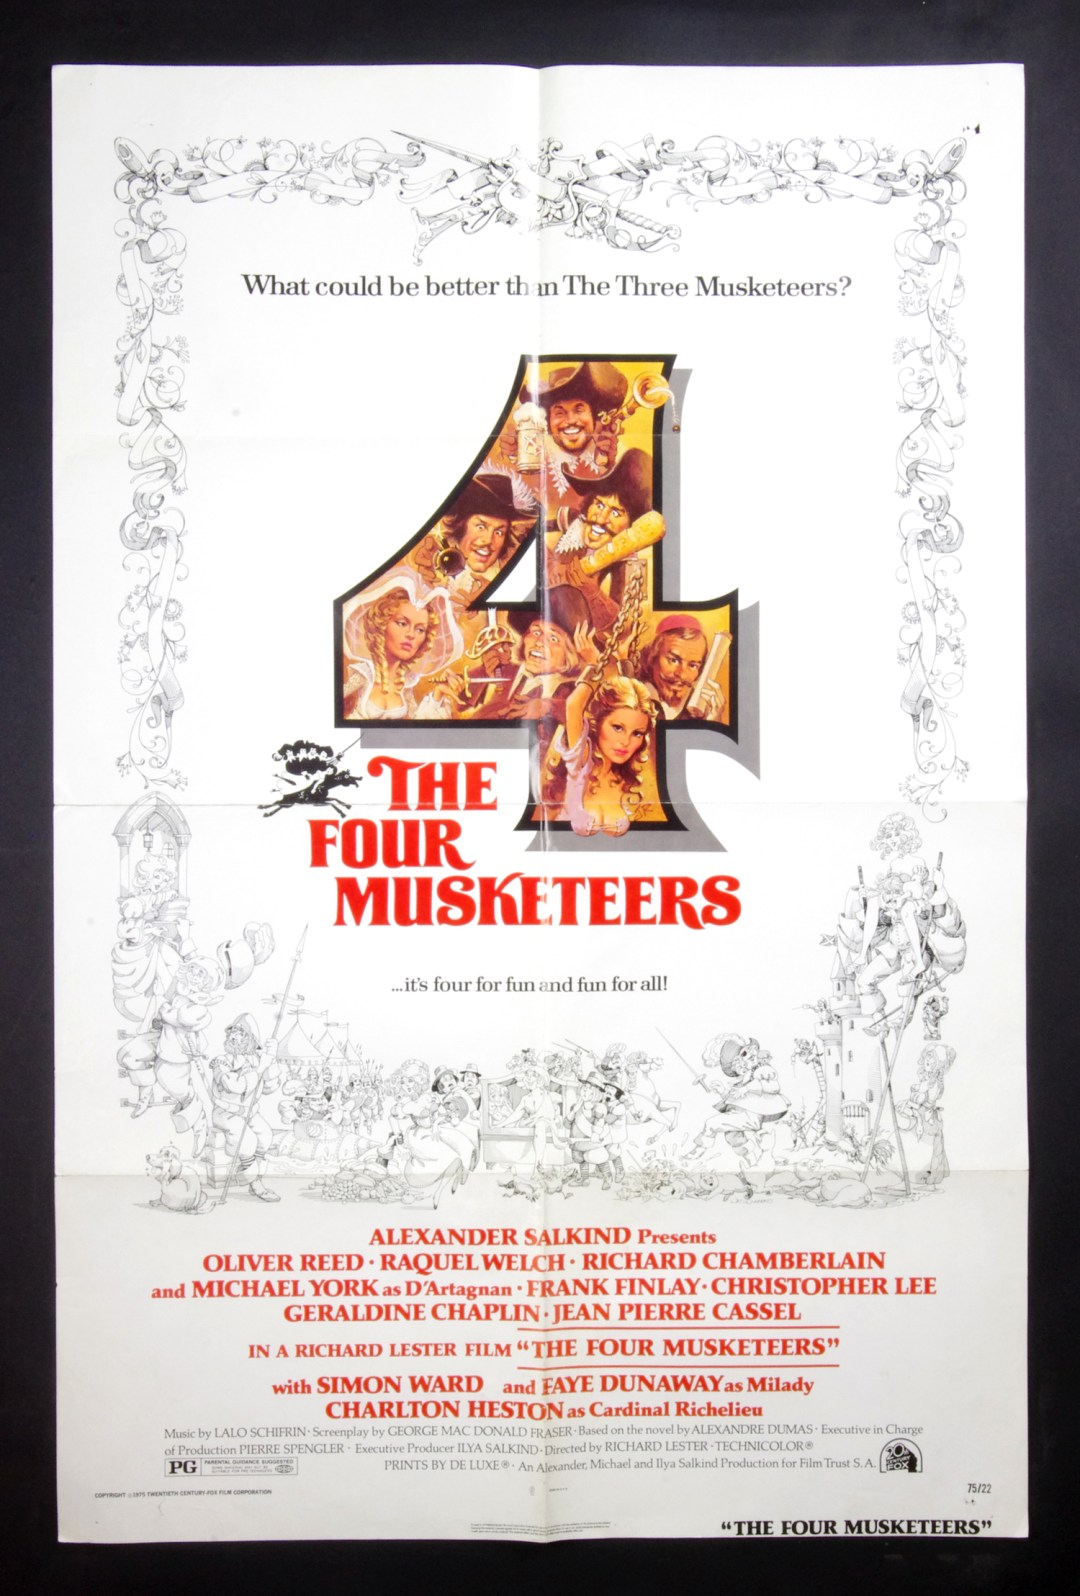 The Four Musketeers Milady's Revenge Movie Poster 1974 27x41 1 sheet